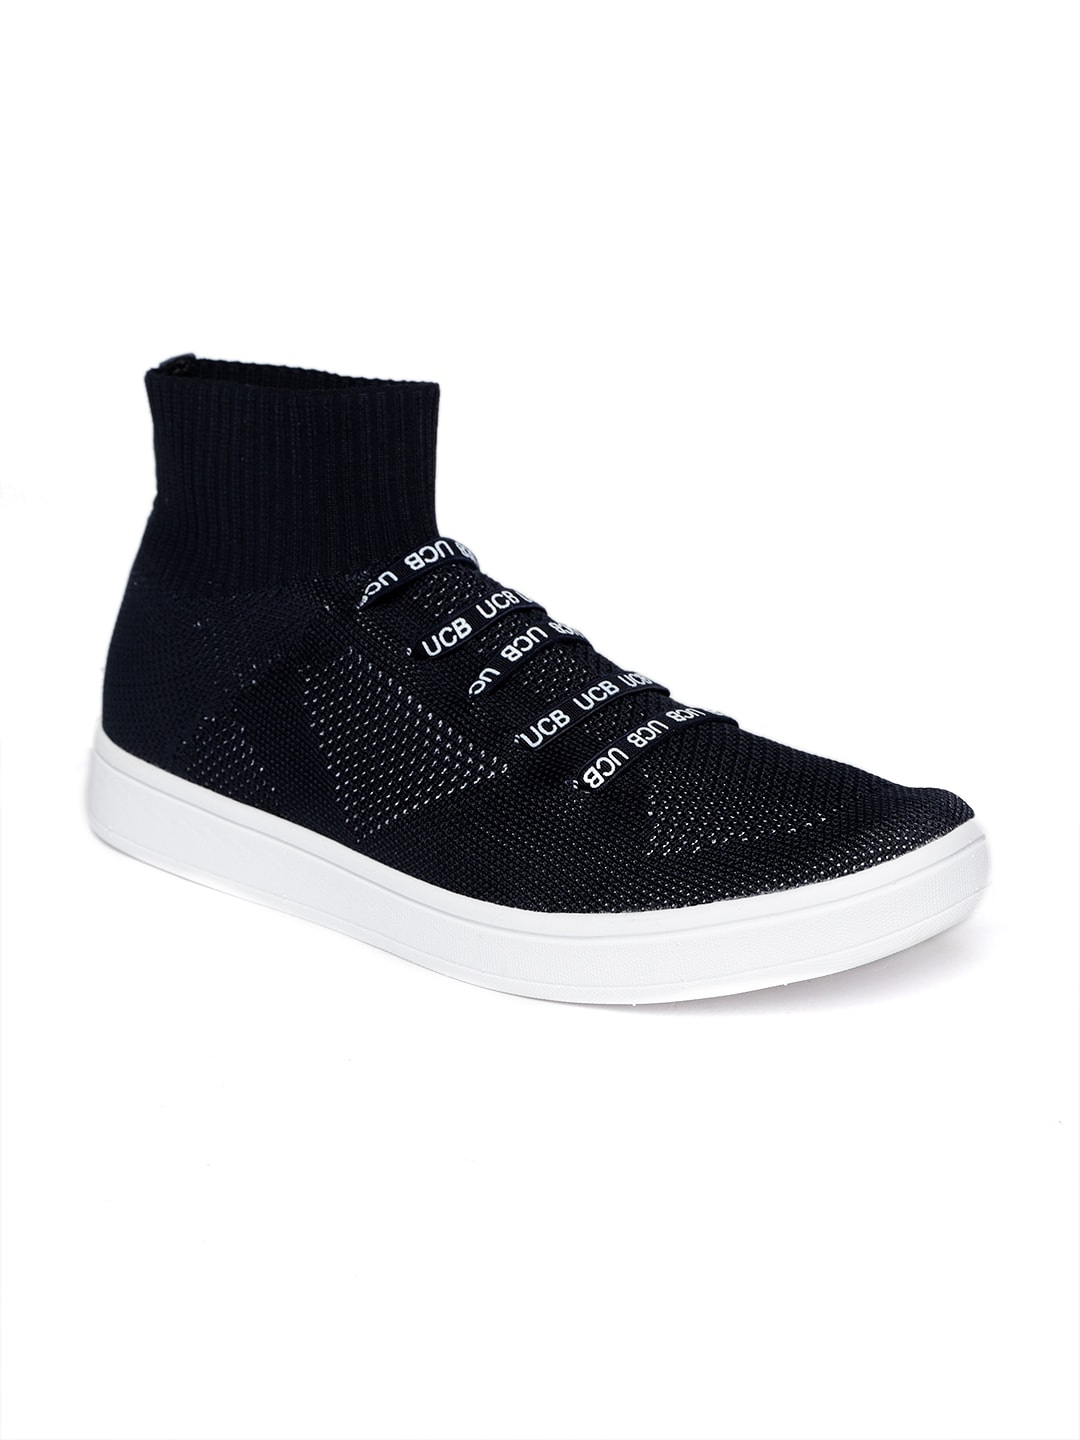 096584e2db7 United Colors of Benetton Shoes - Buy UCB Sneakers Online